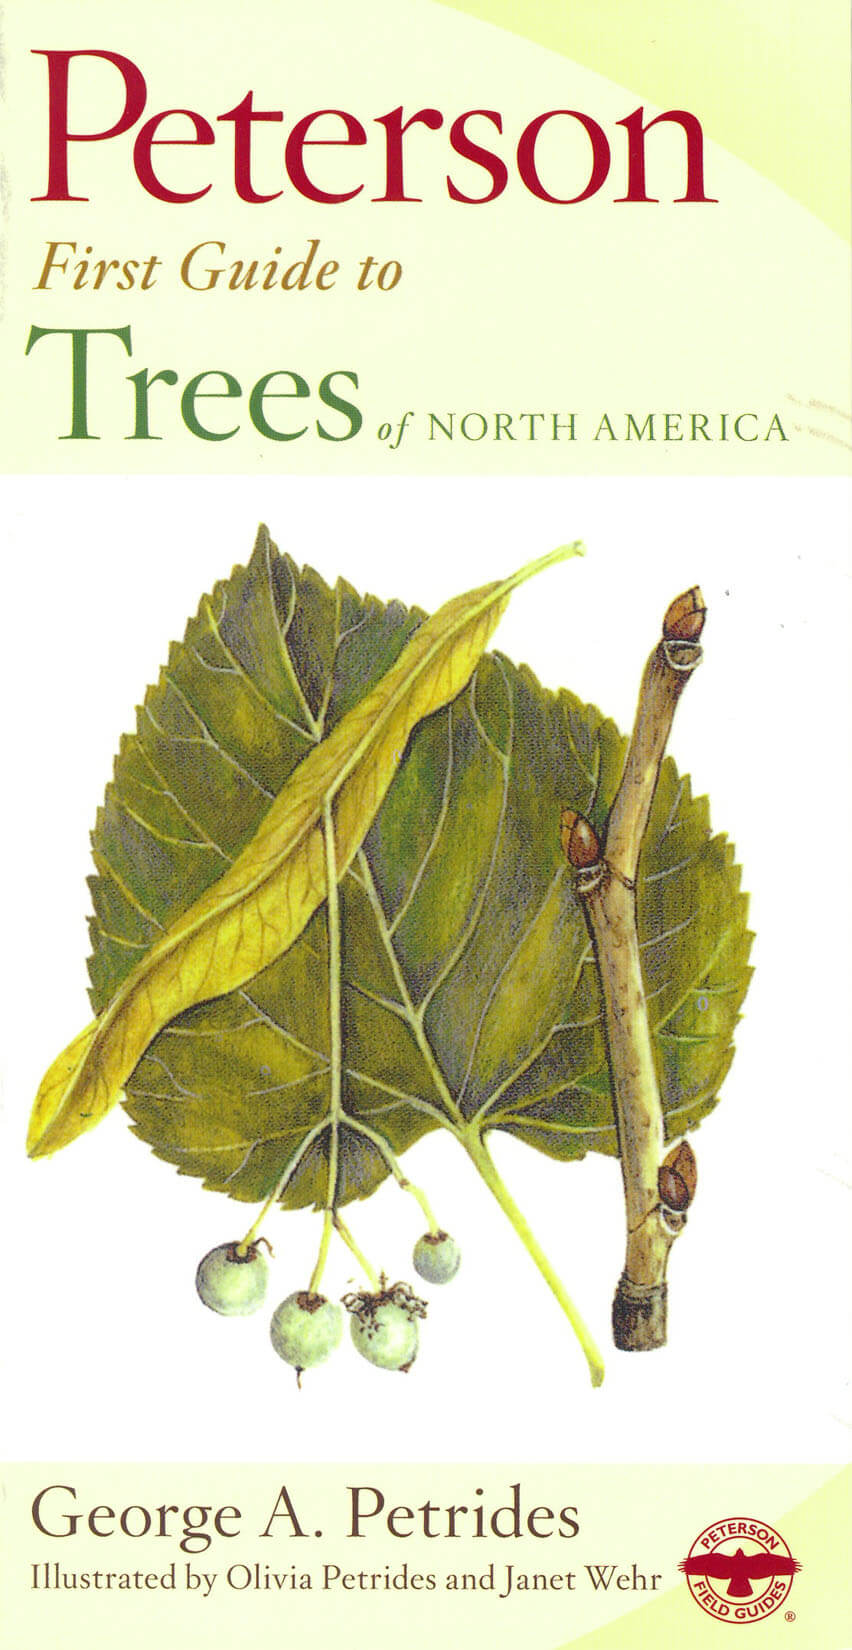 peterson first guide to trees memoria press rh memoriapress com peterson field guide to birds of north america bird field guide peterson